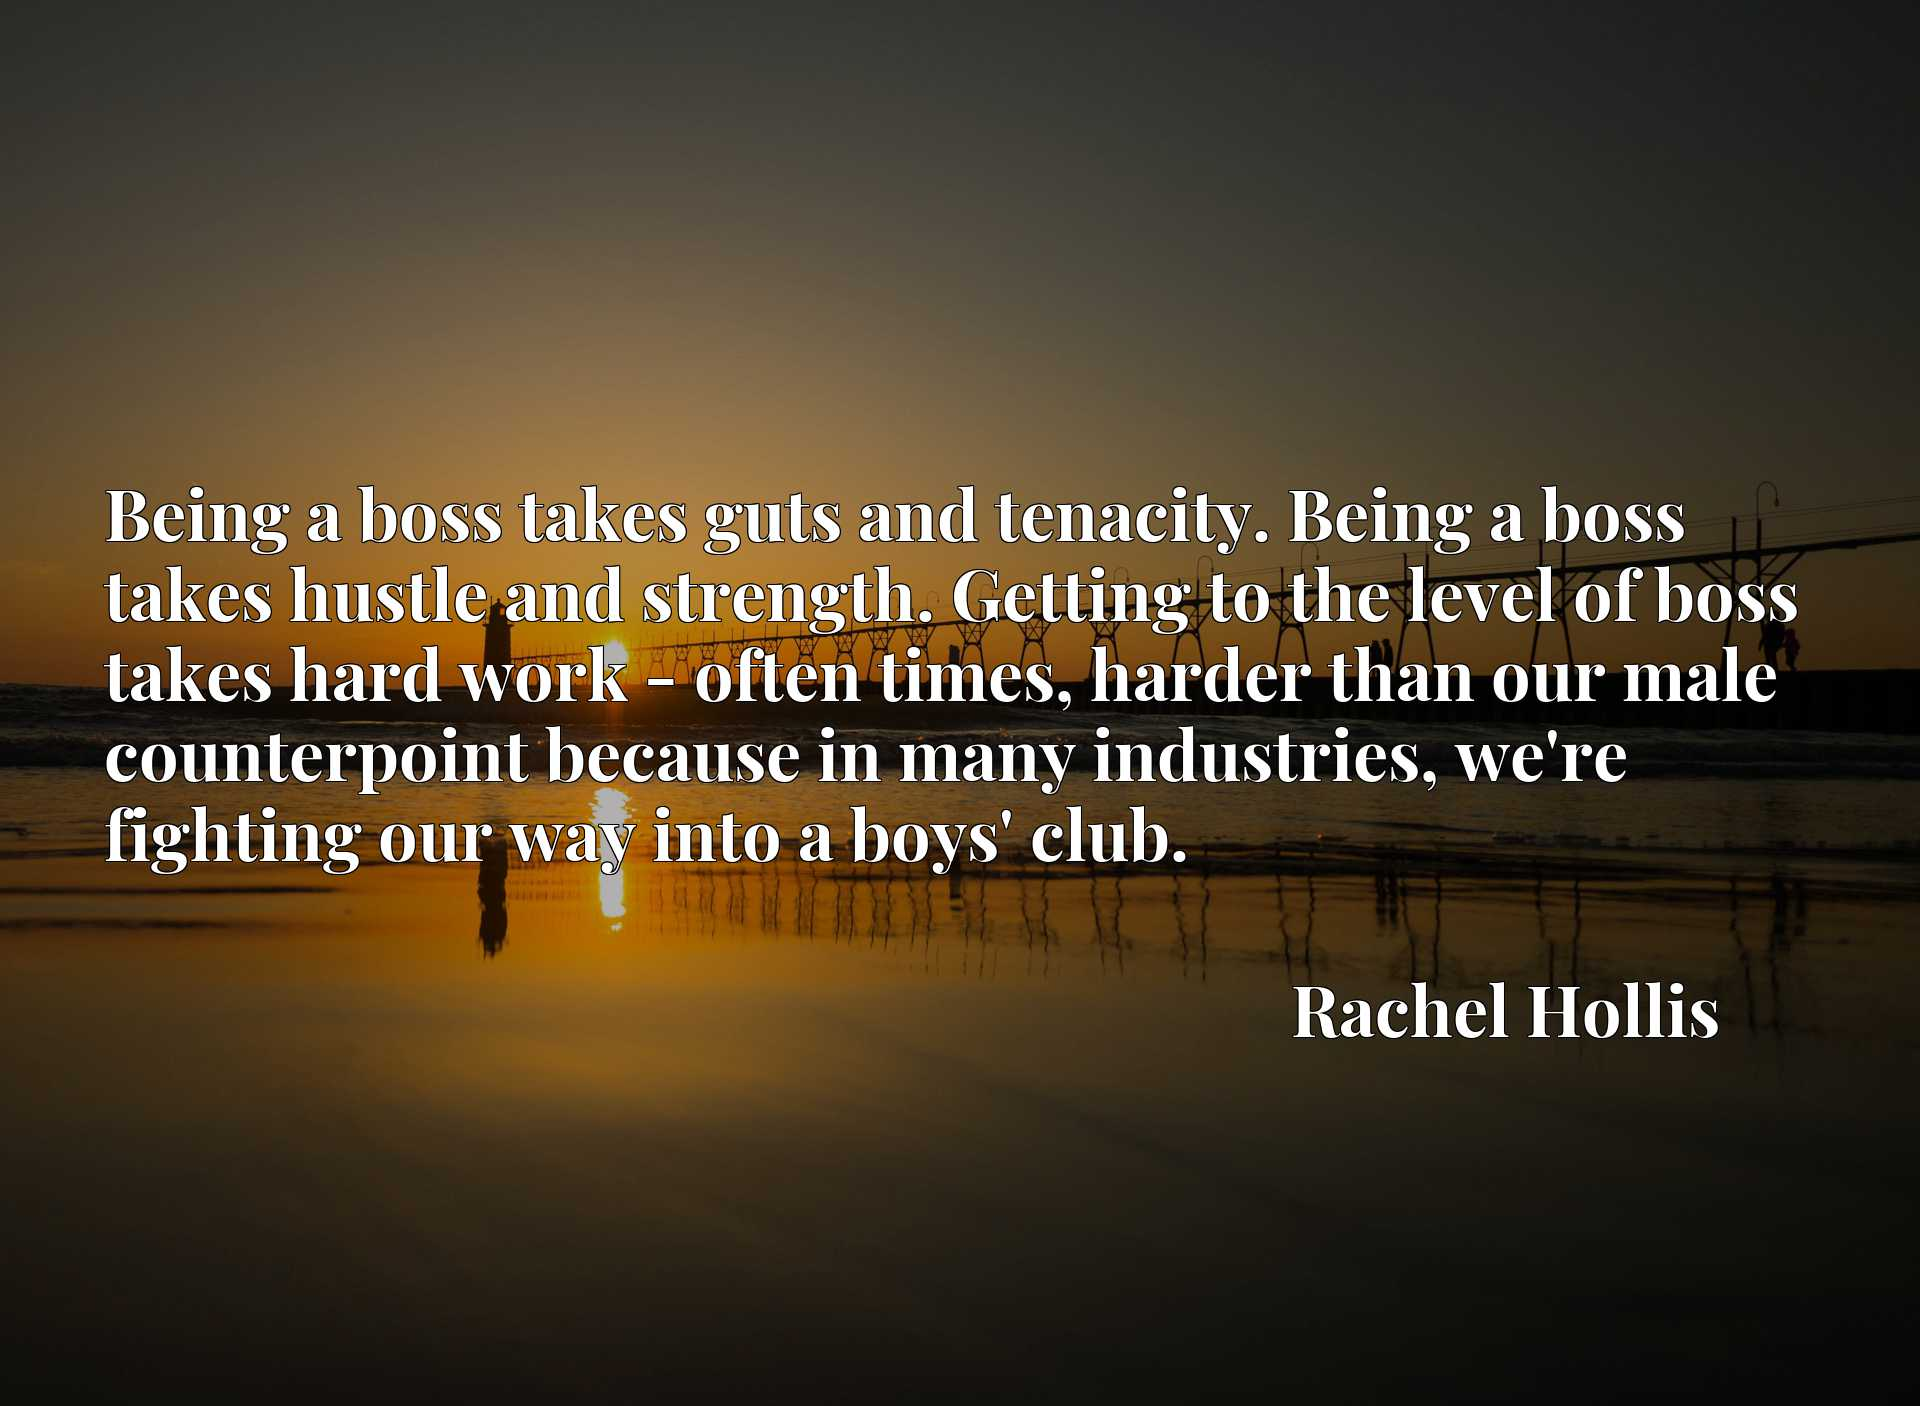 Being a boss takes guts and tenacity. Being a boss takes hustle and strength. Getting to the level of boss takes hard work - often times, harder than our male counterpoint because in many industries, we're fighting our way into a boys' club.